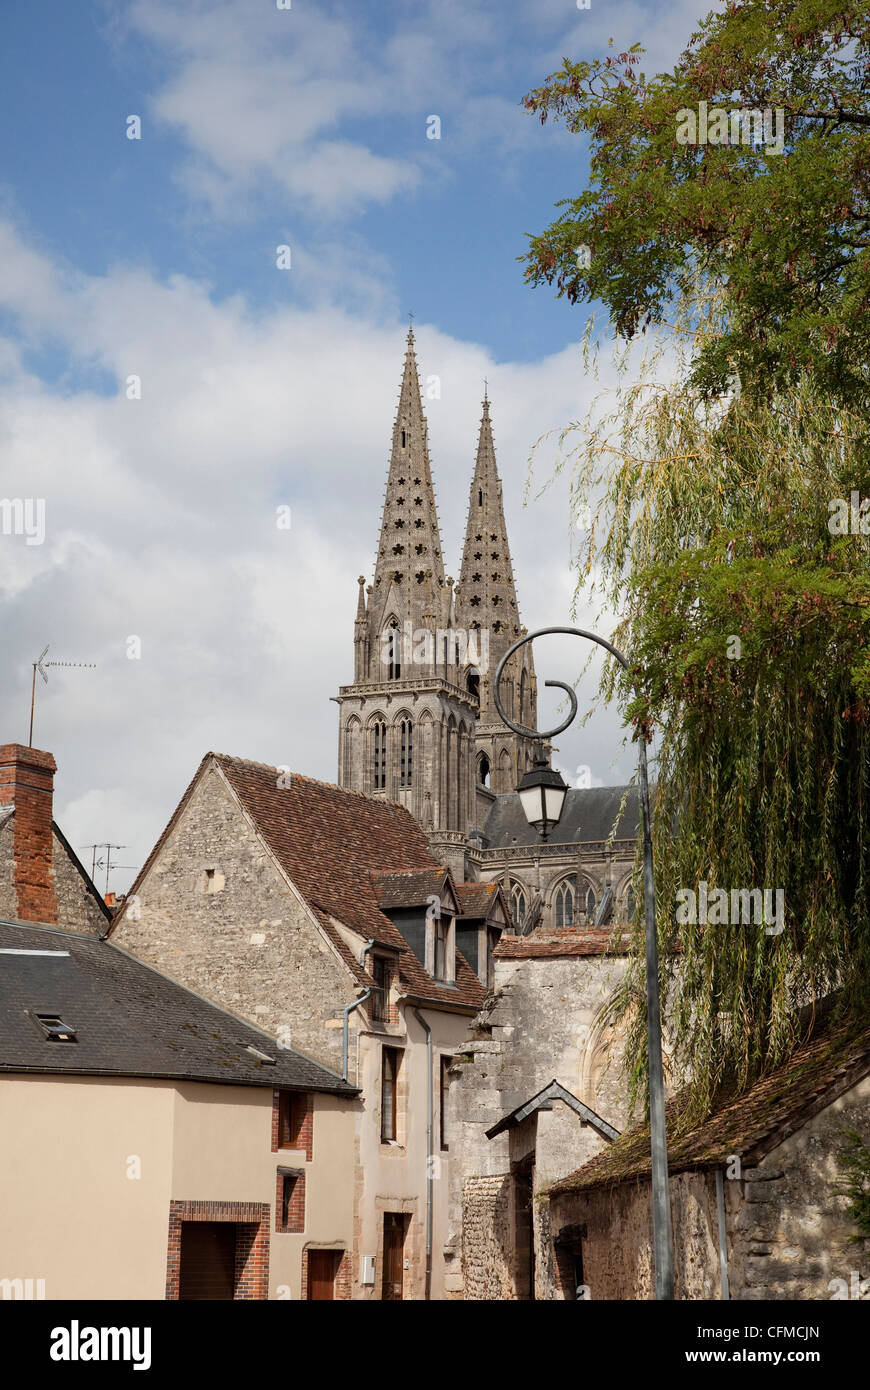 Cathedral spires seen over old houses, Sees, Lower Normandy, France, Europe - Stock Image